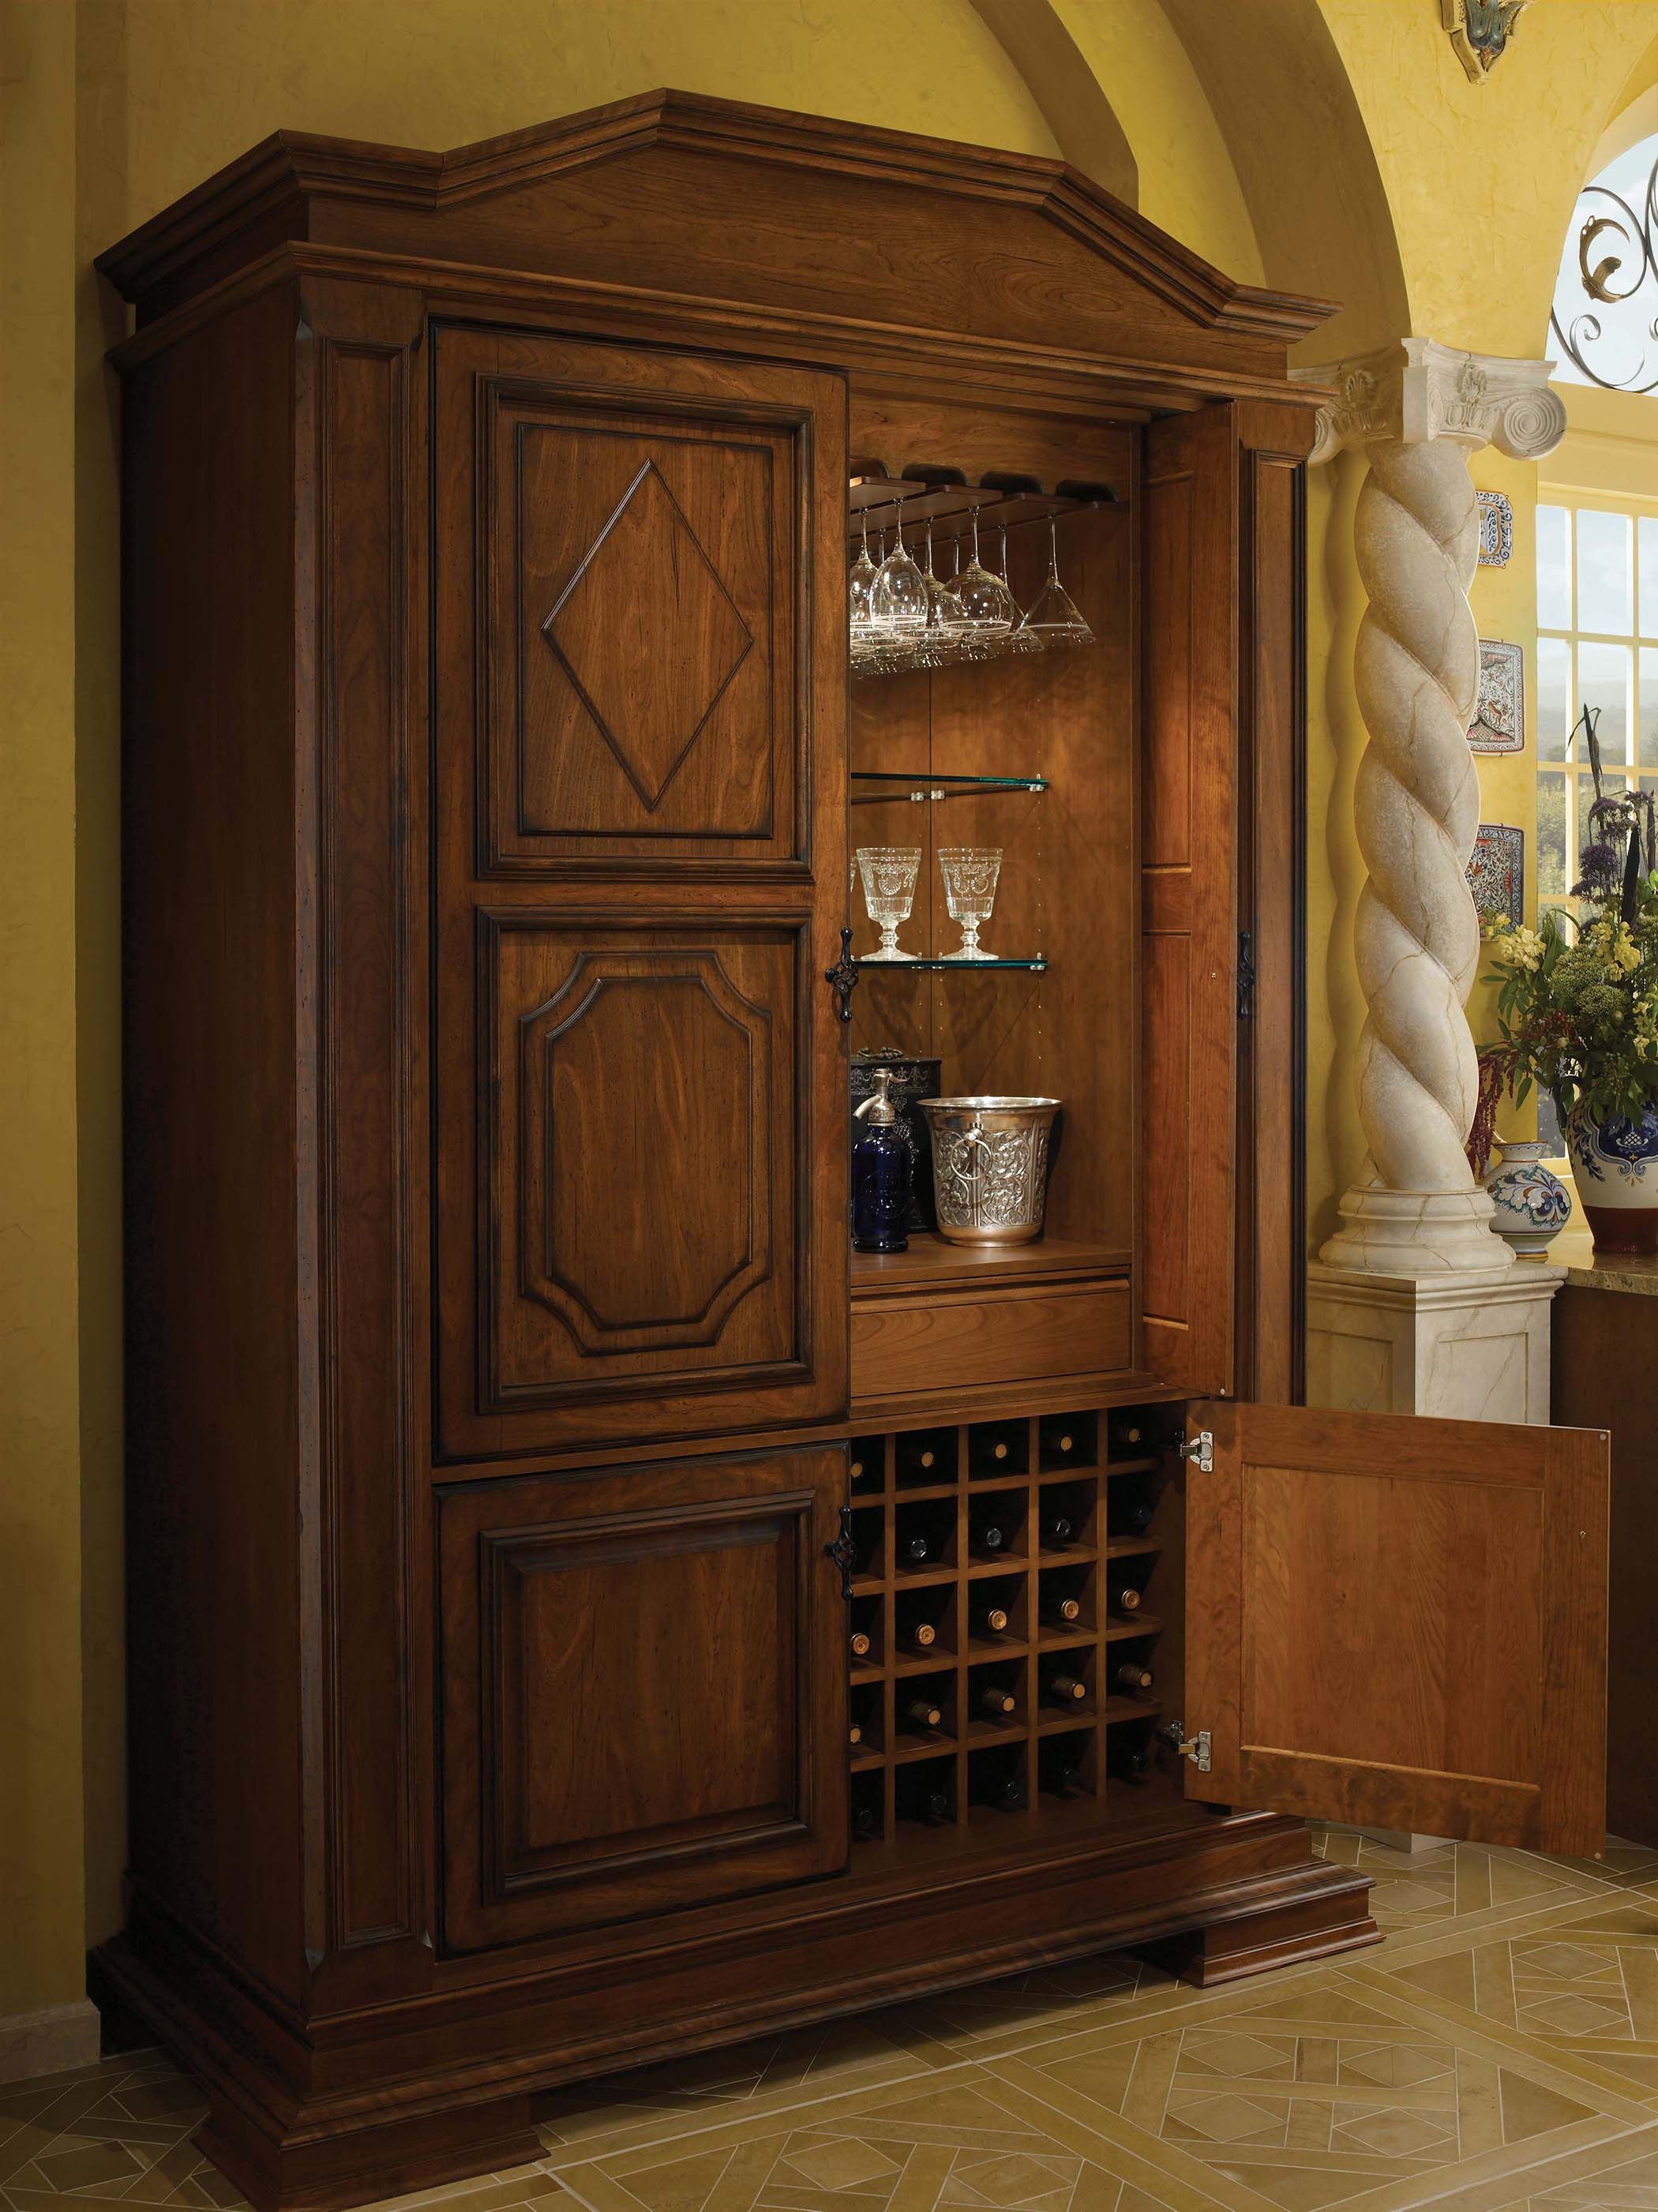 Tall Bar Cabinet by Wood-Mode, shown in Antique Sienna finish on ...